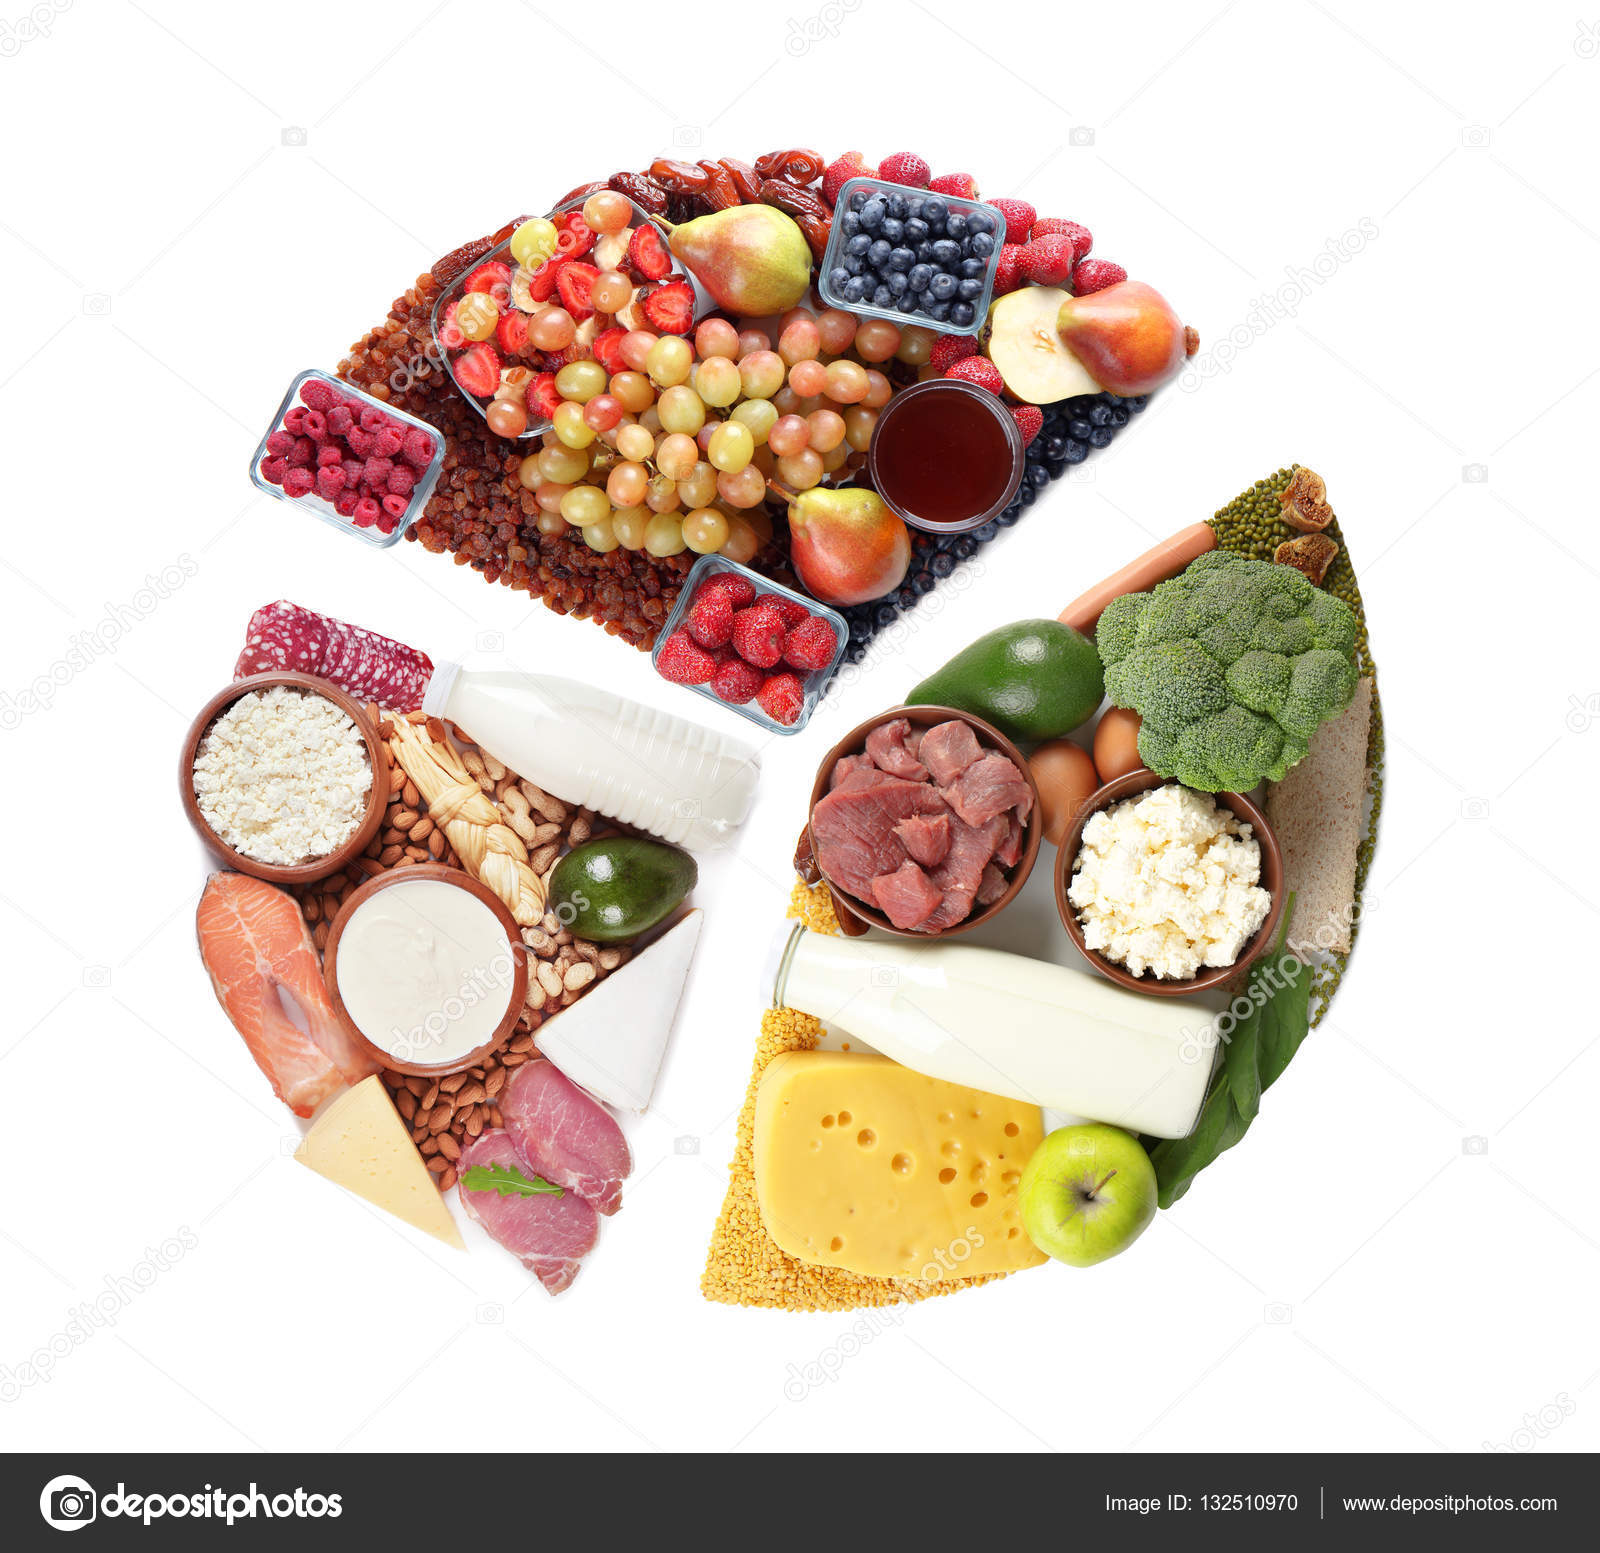 Pie chart of food products stock photo belchonock 132510970 pie chart of food products stock photo nvjuhfo Image collections